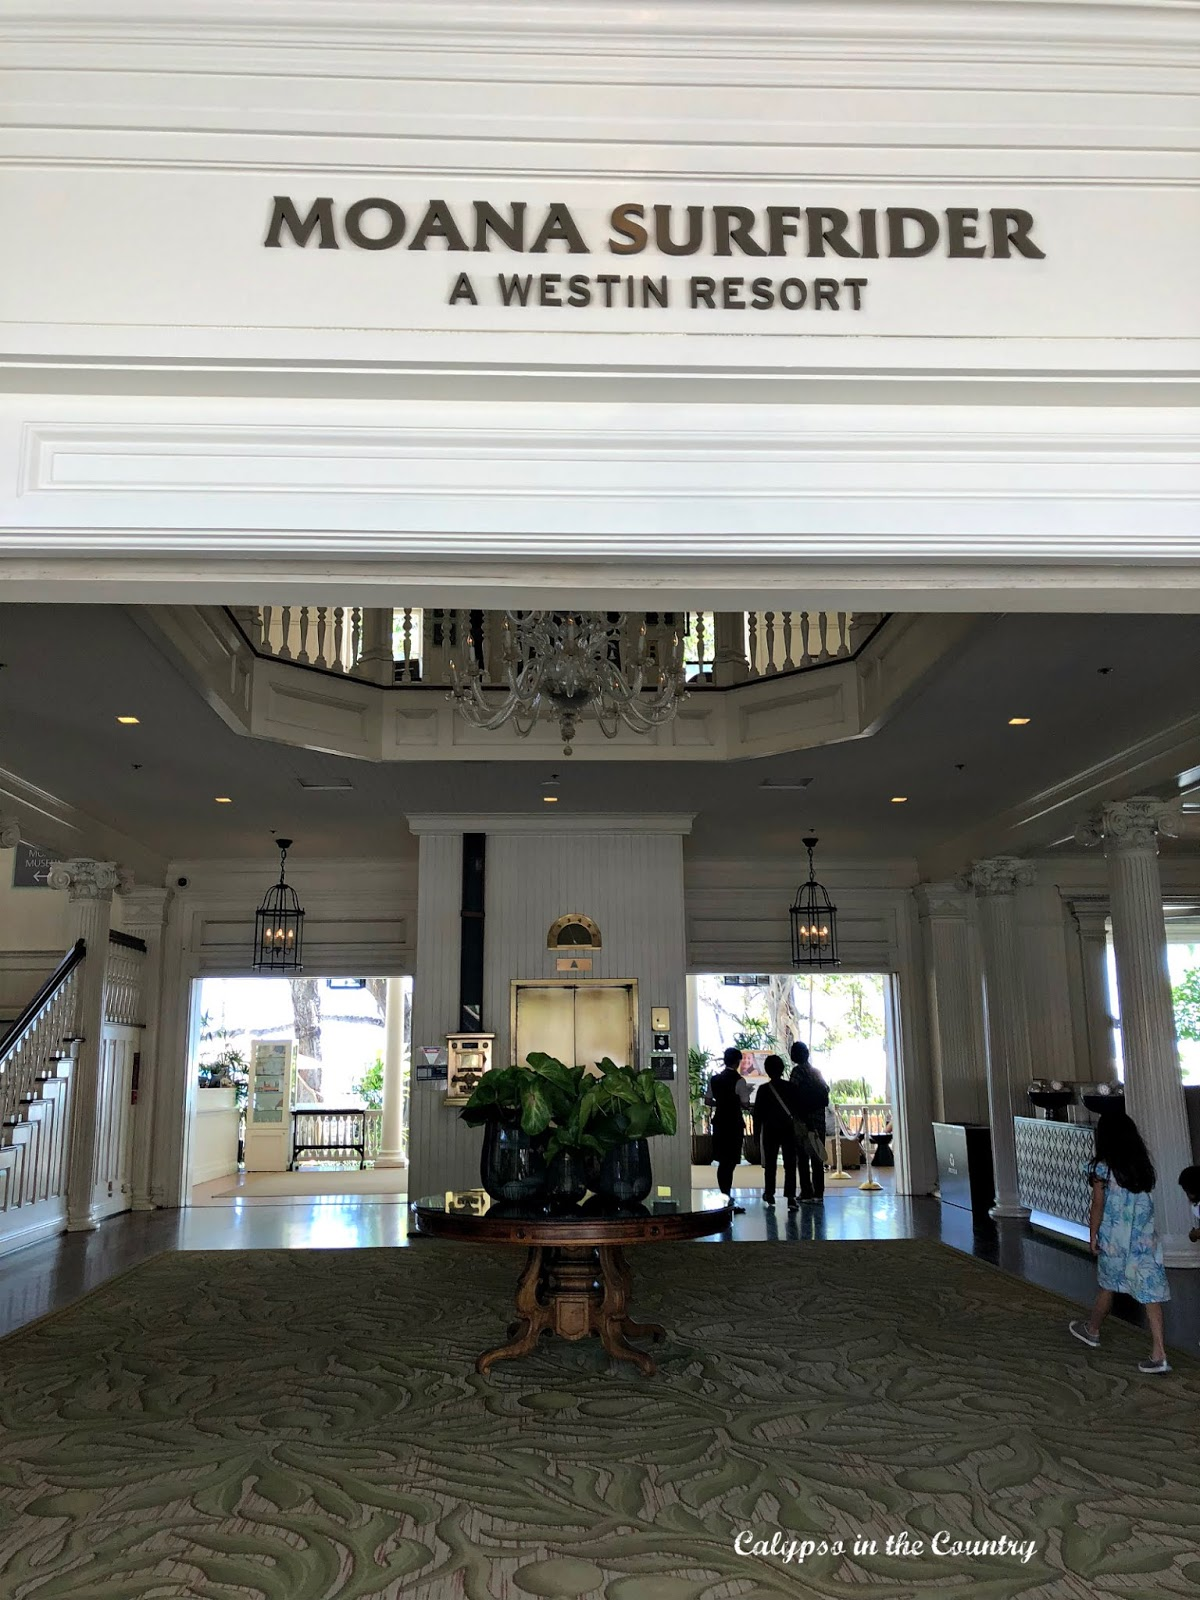 Lobby of the Moana Surfrider Hotel